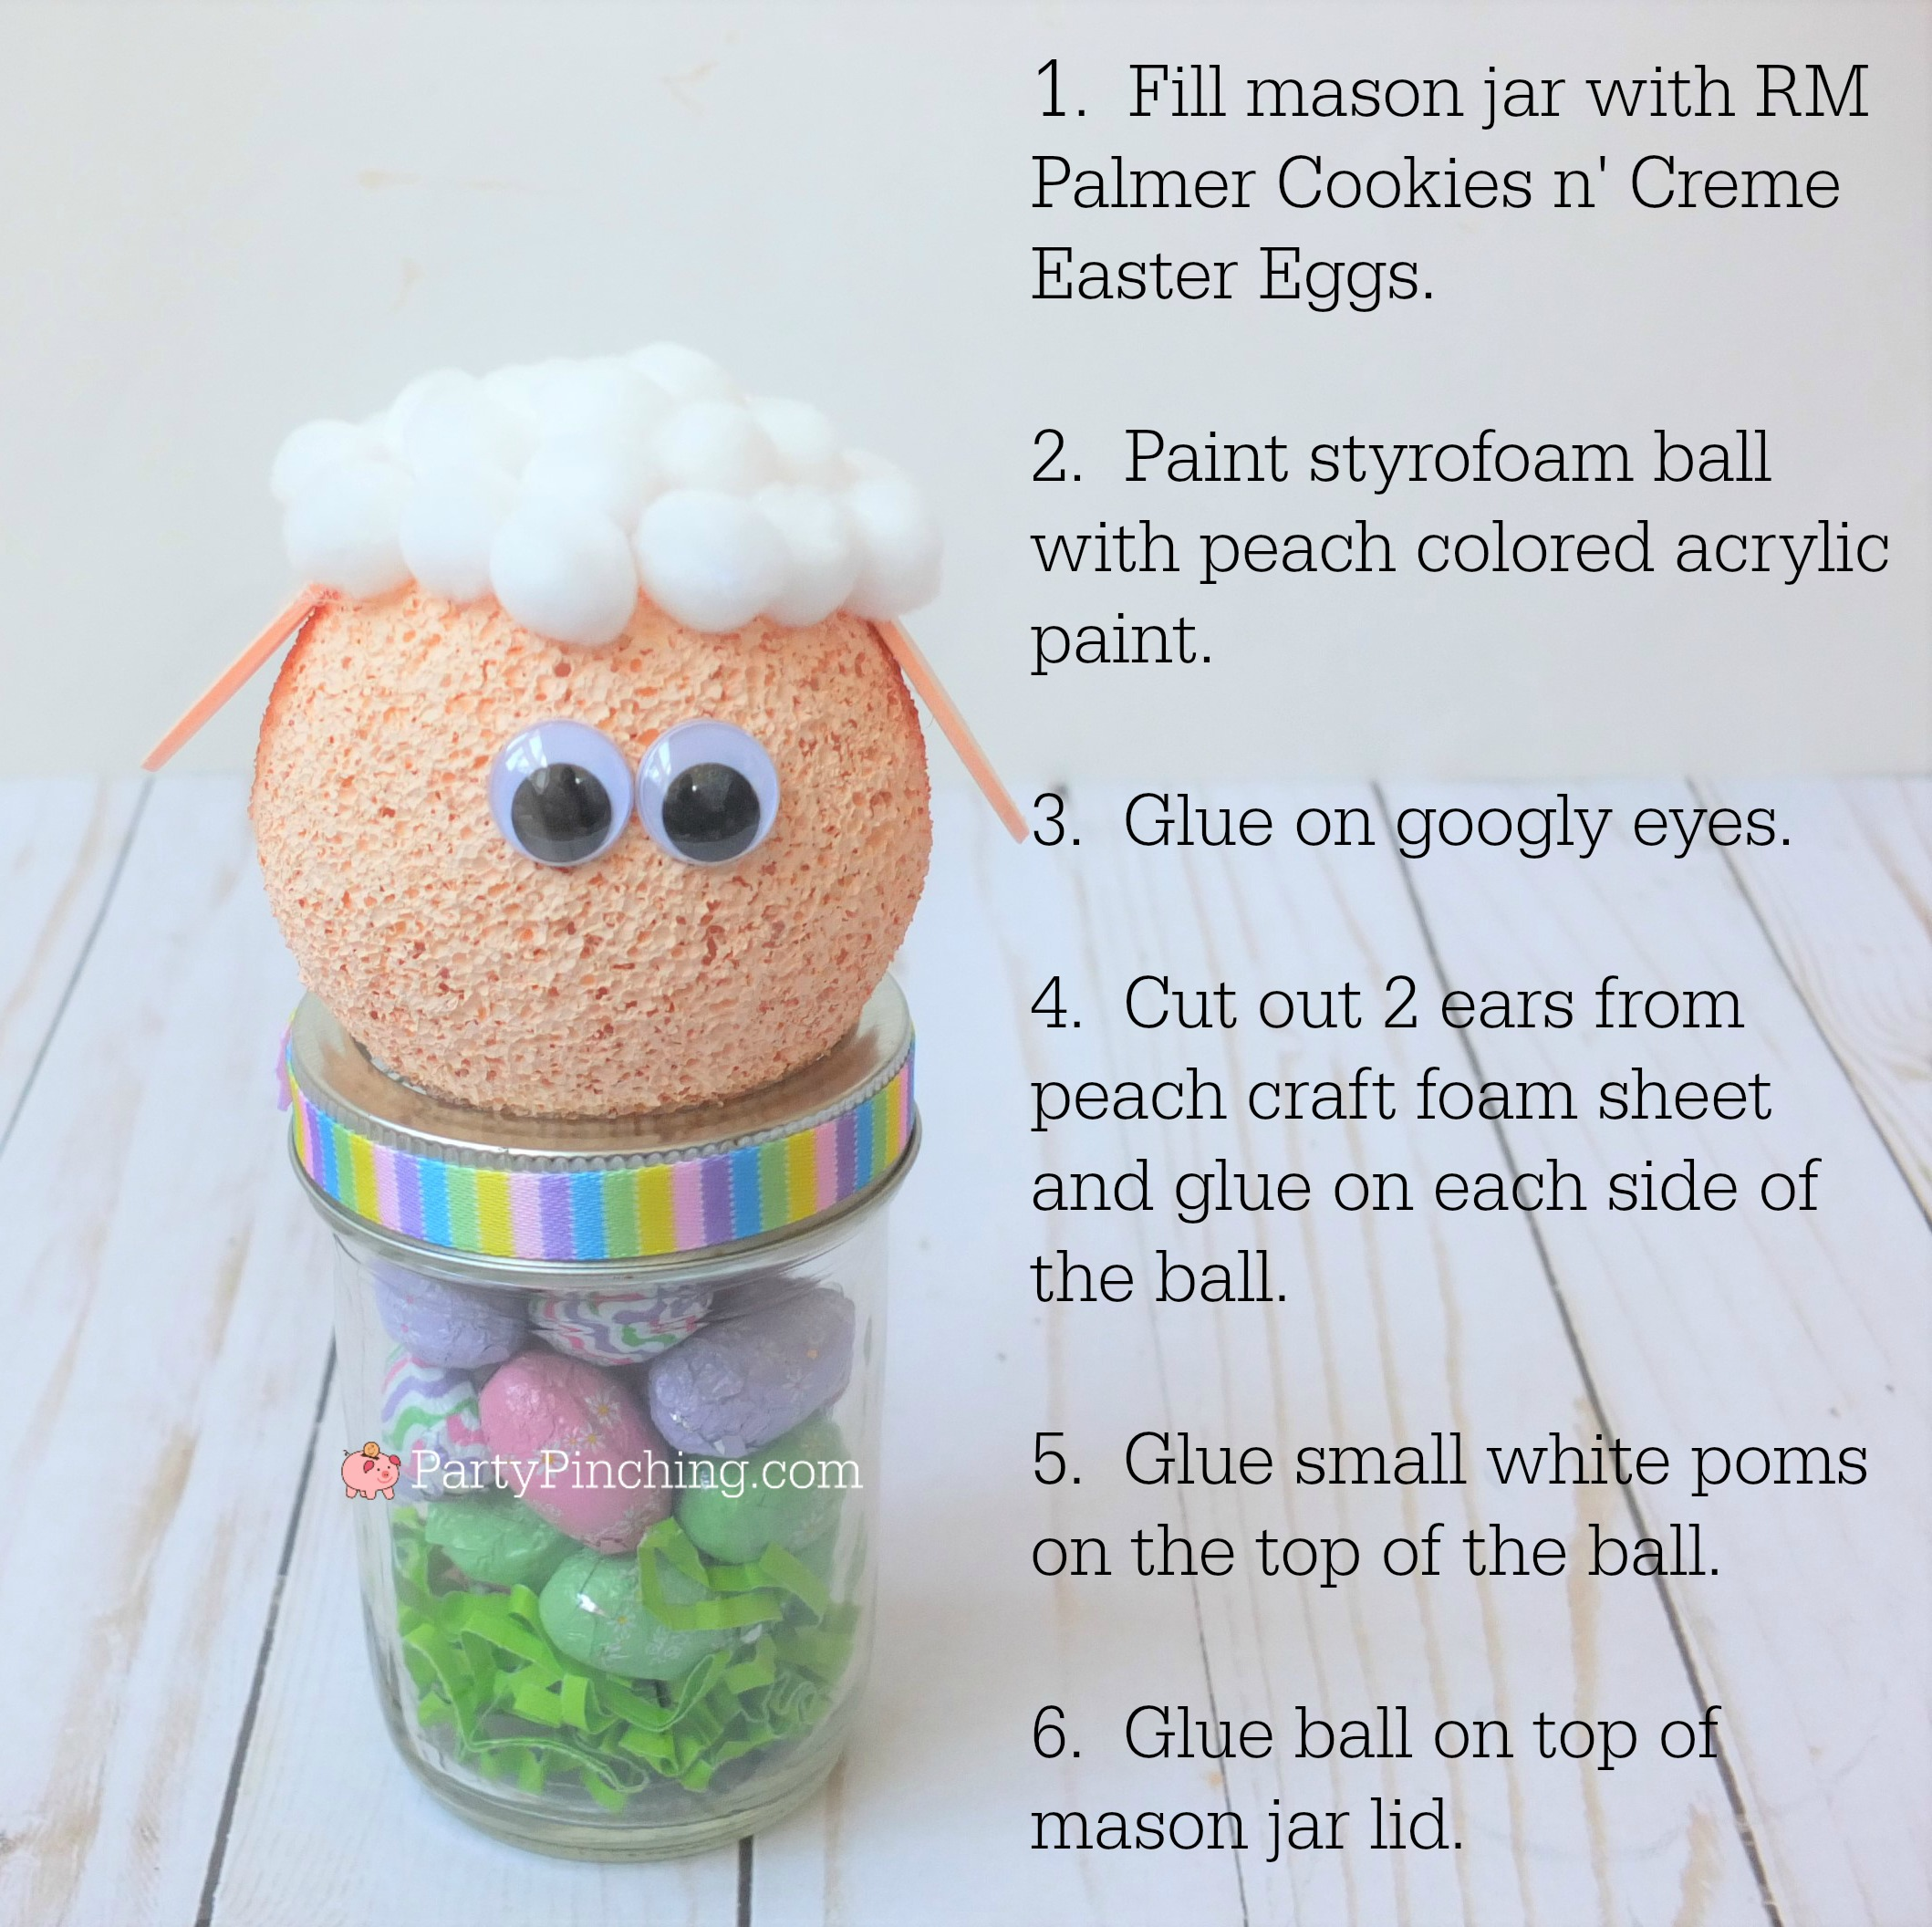 Lamb sheep Easter candy mason jar craft, Cute Easter jar craft animals bunny chick lamb, fun and easy Easter craft for kids, Easter candy favor, RM Palmer candy